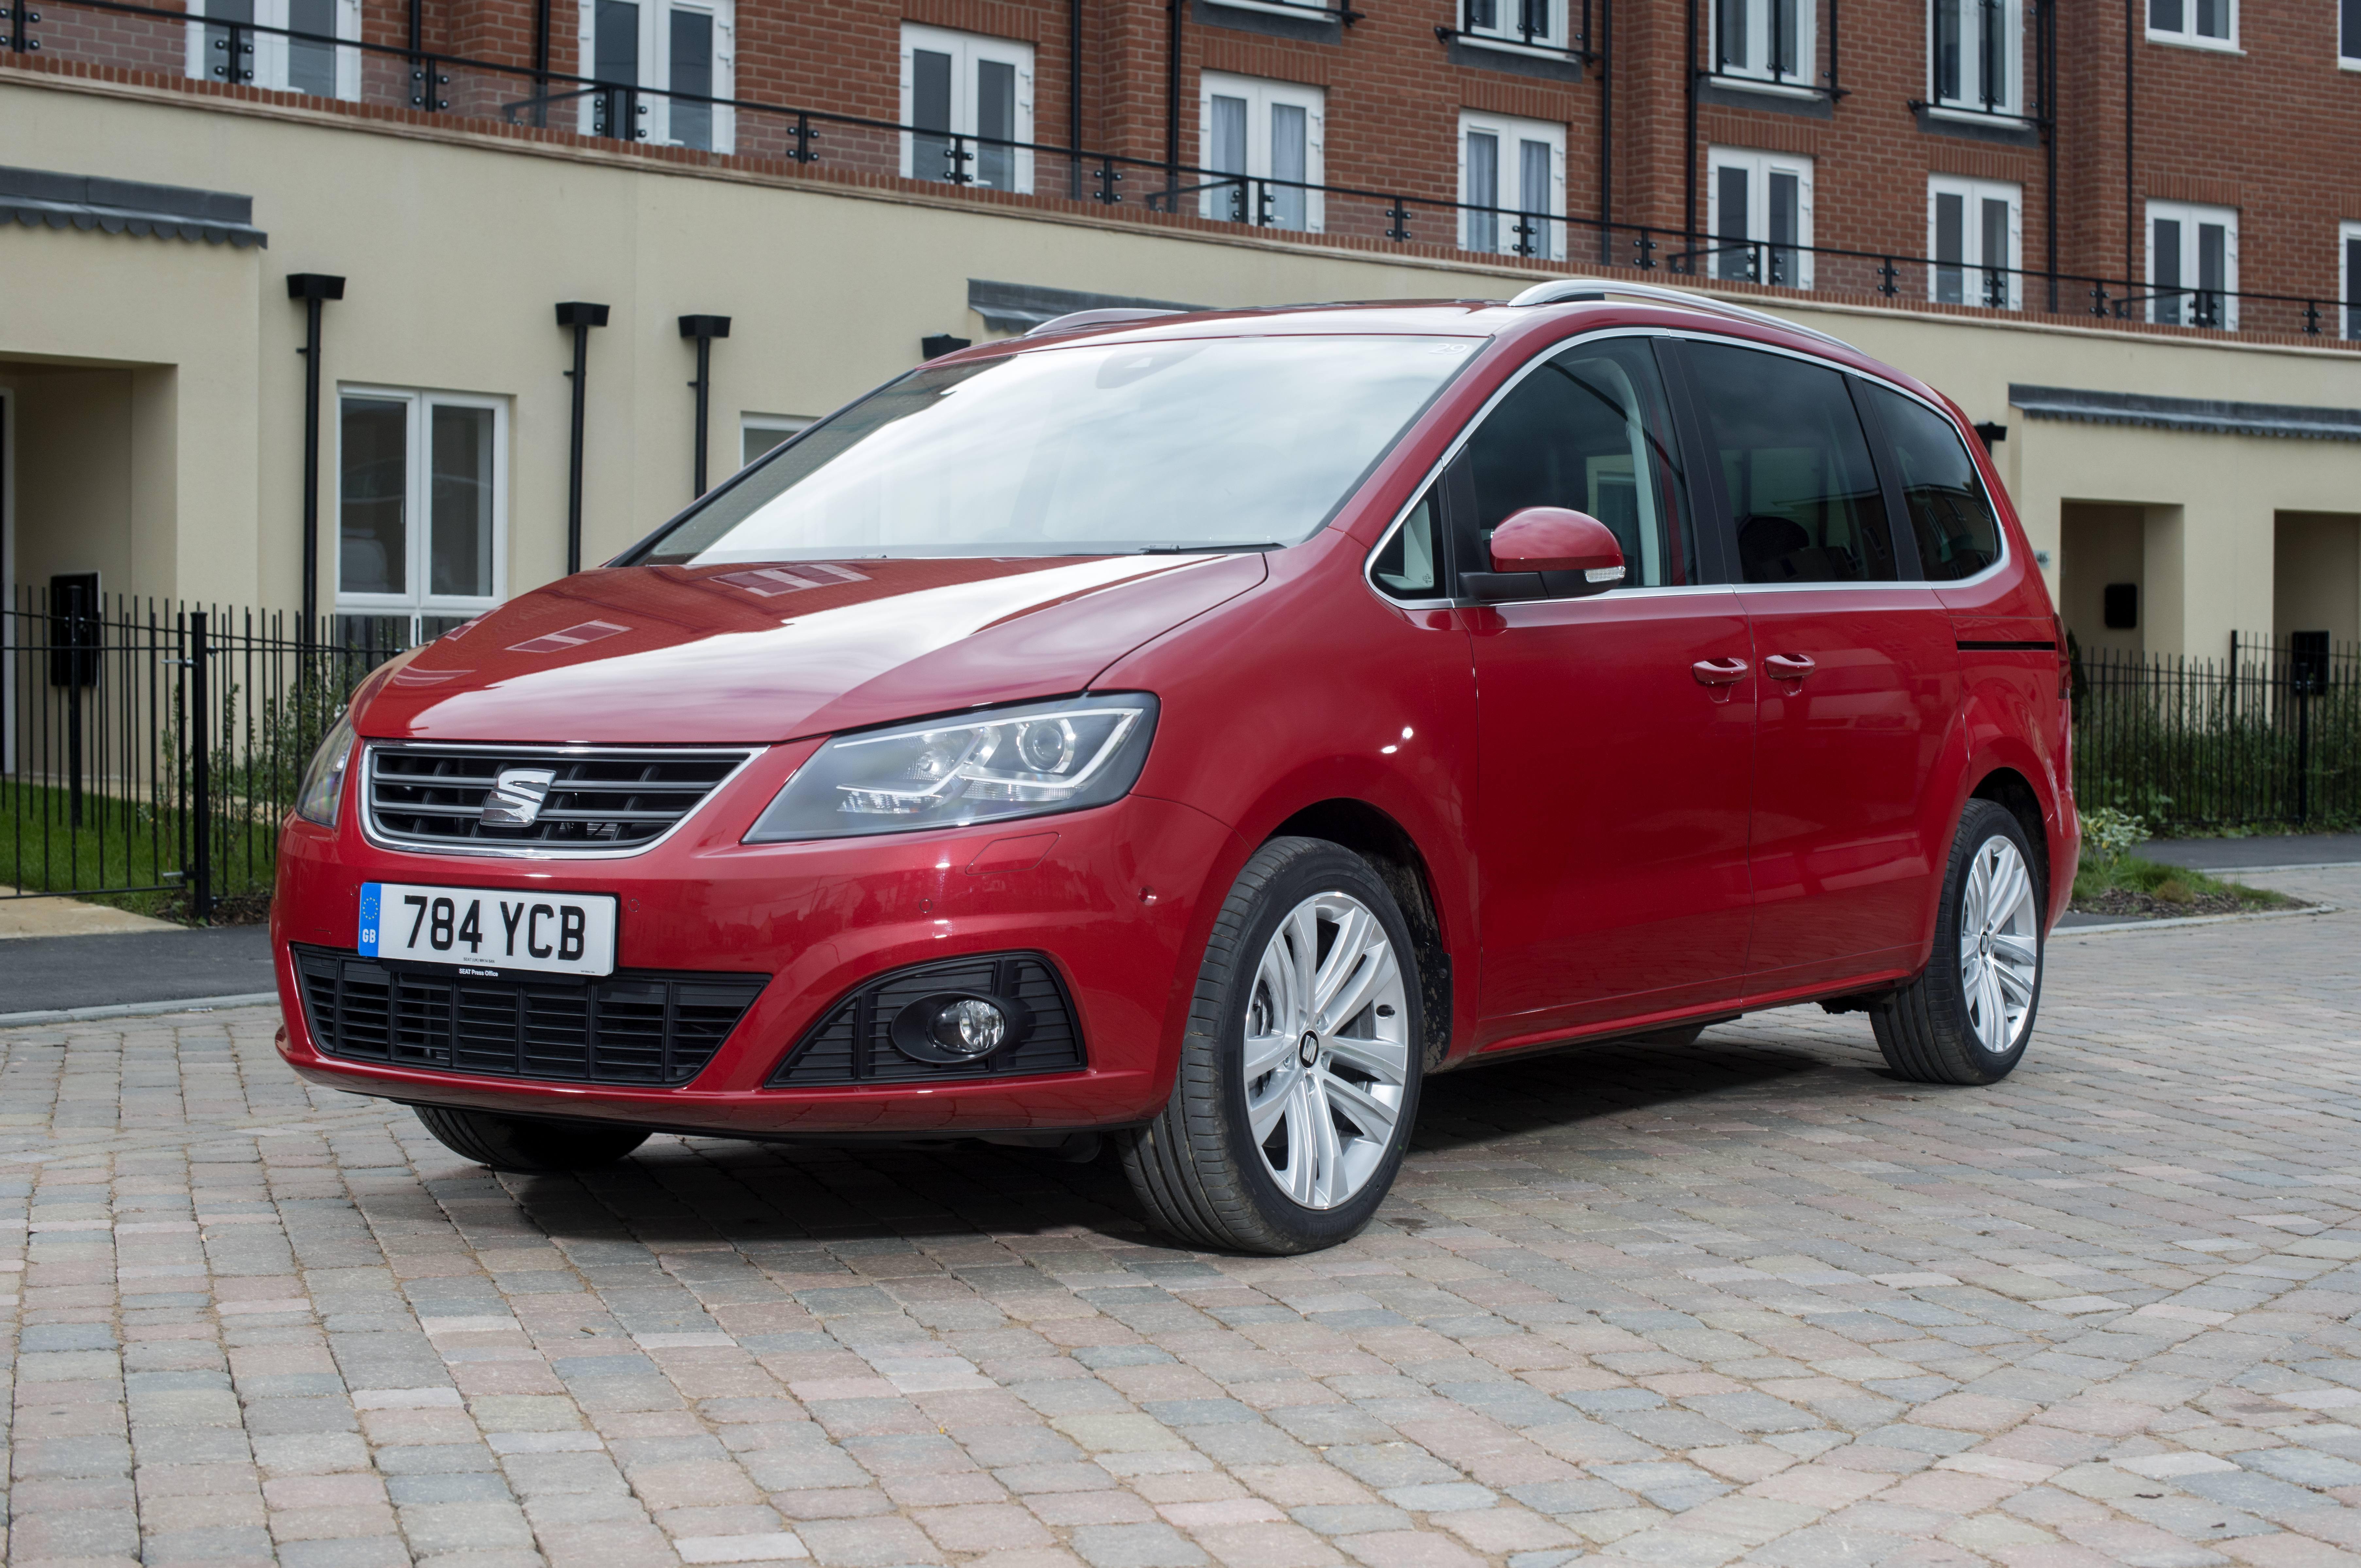 Parked red SEAT Alhambra